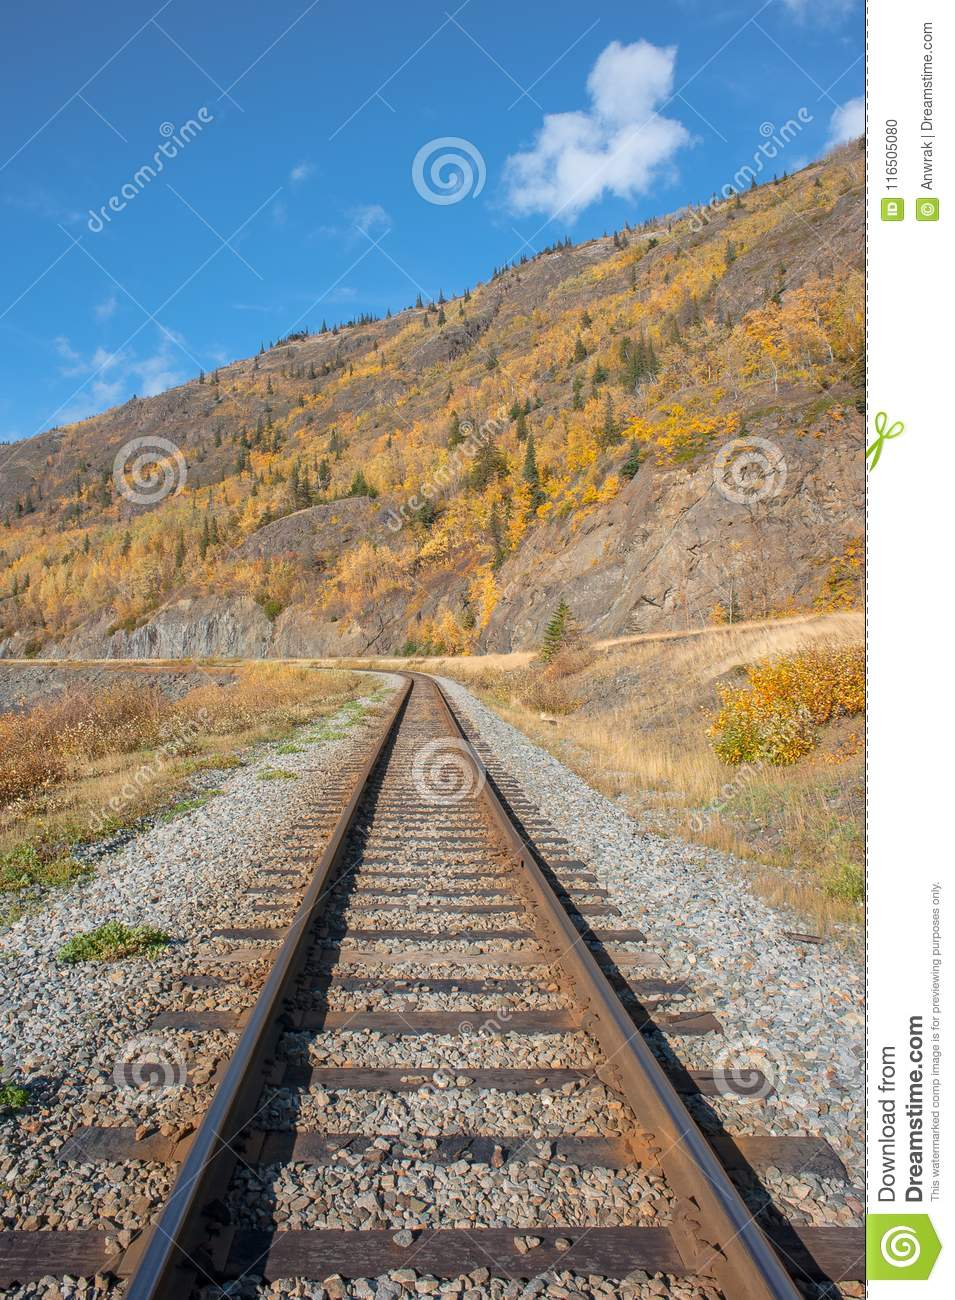 Train tracks and fall colors